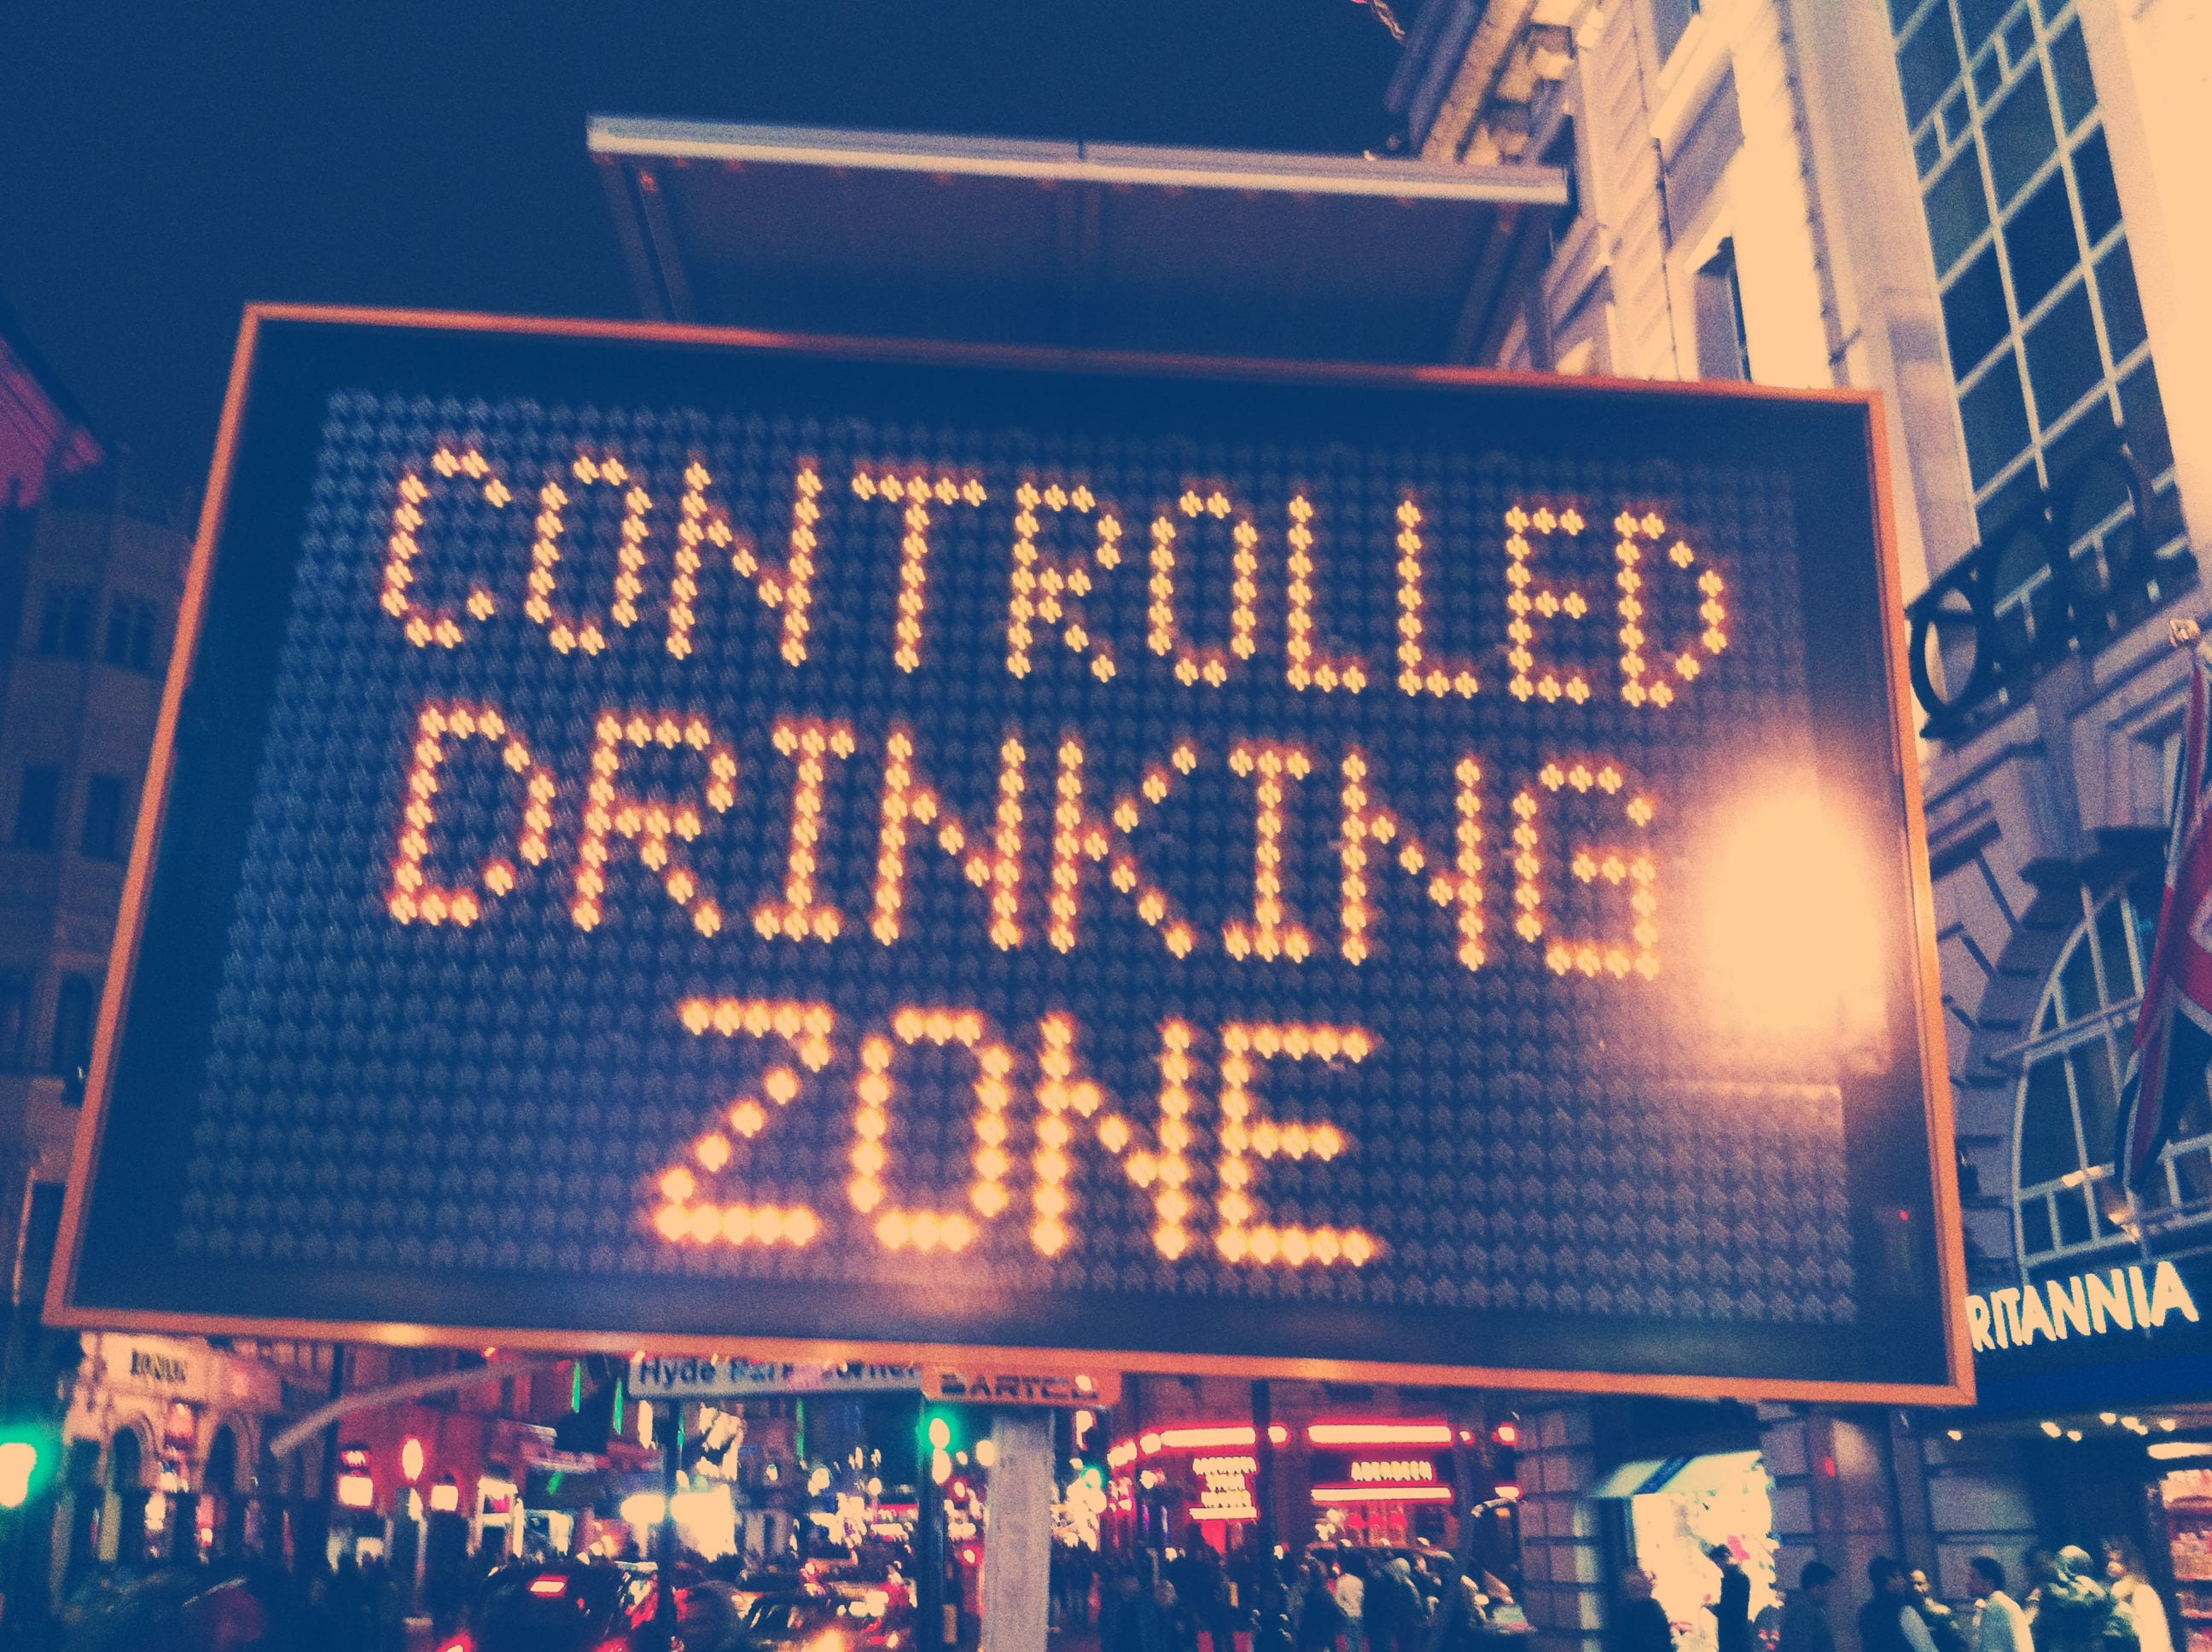 controlled drinking zone